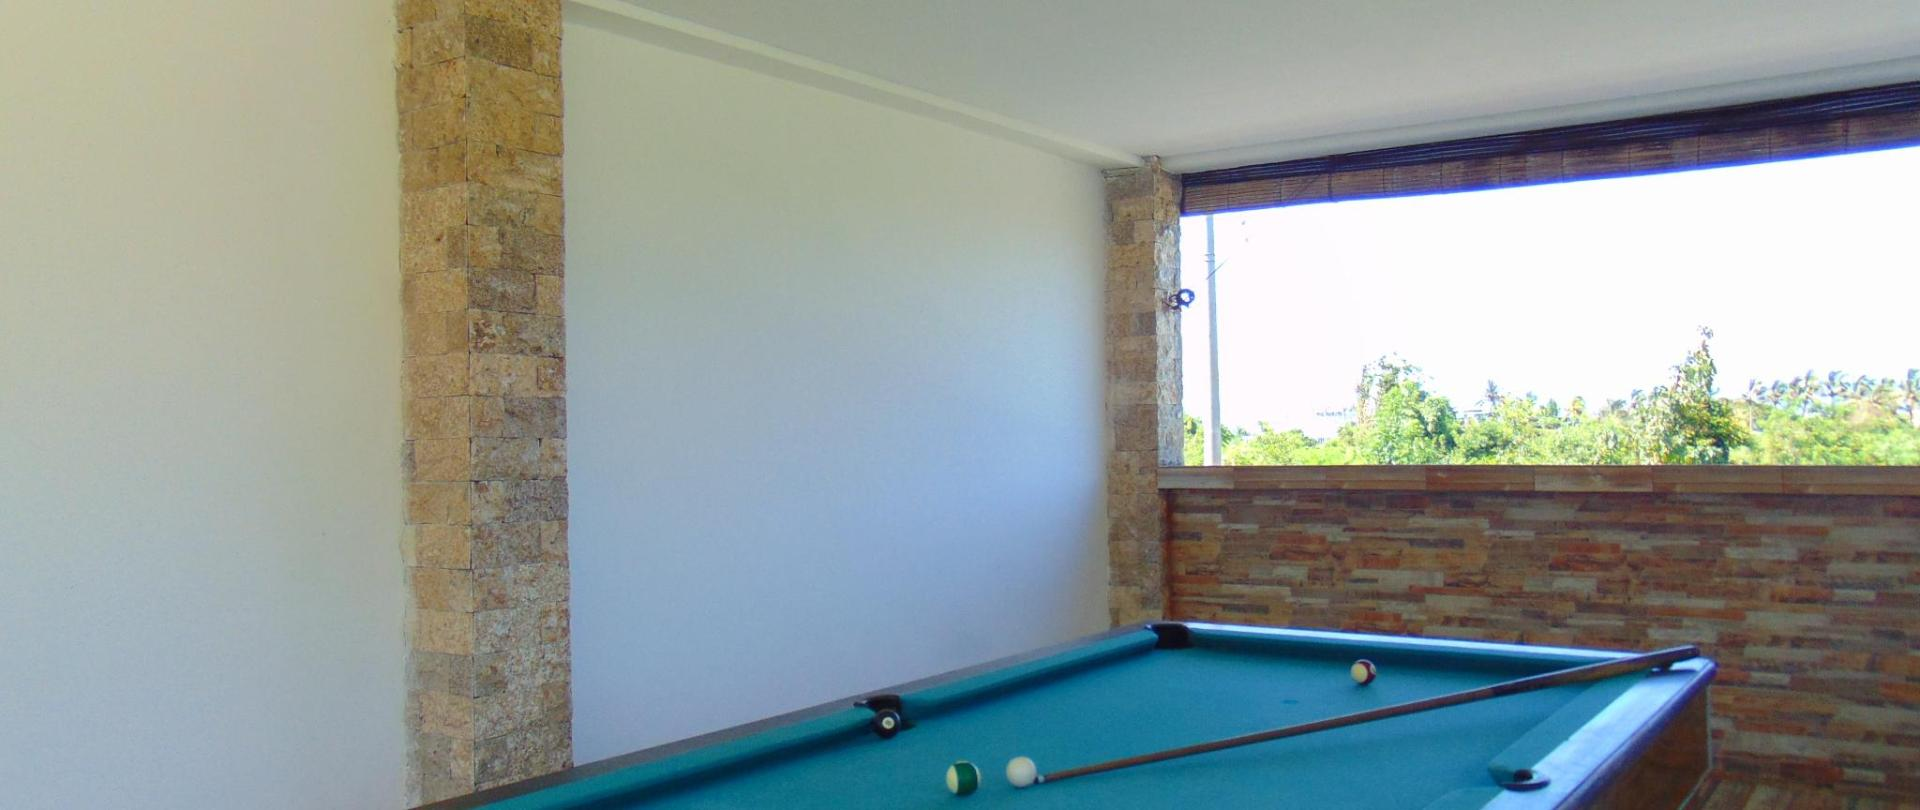 05. Pool Table_01.JPG